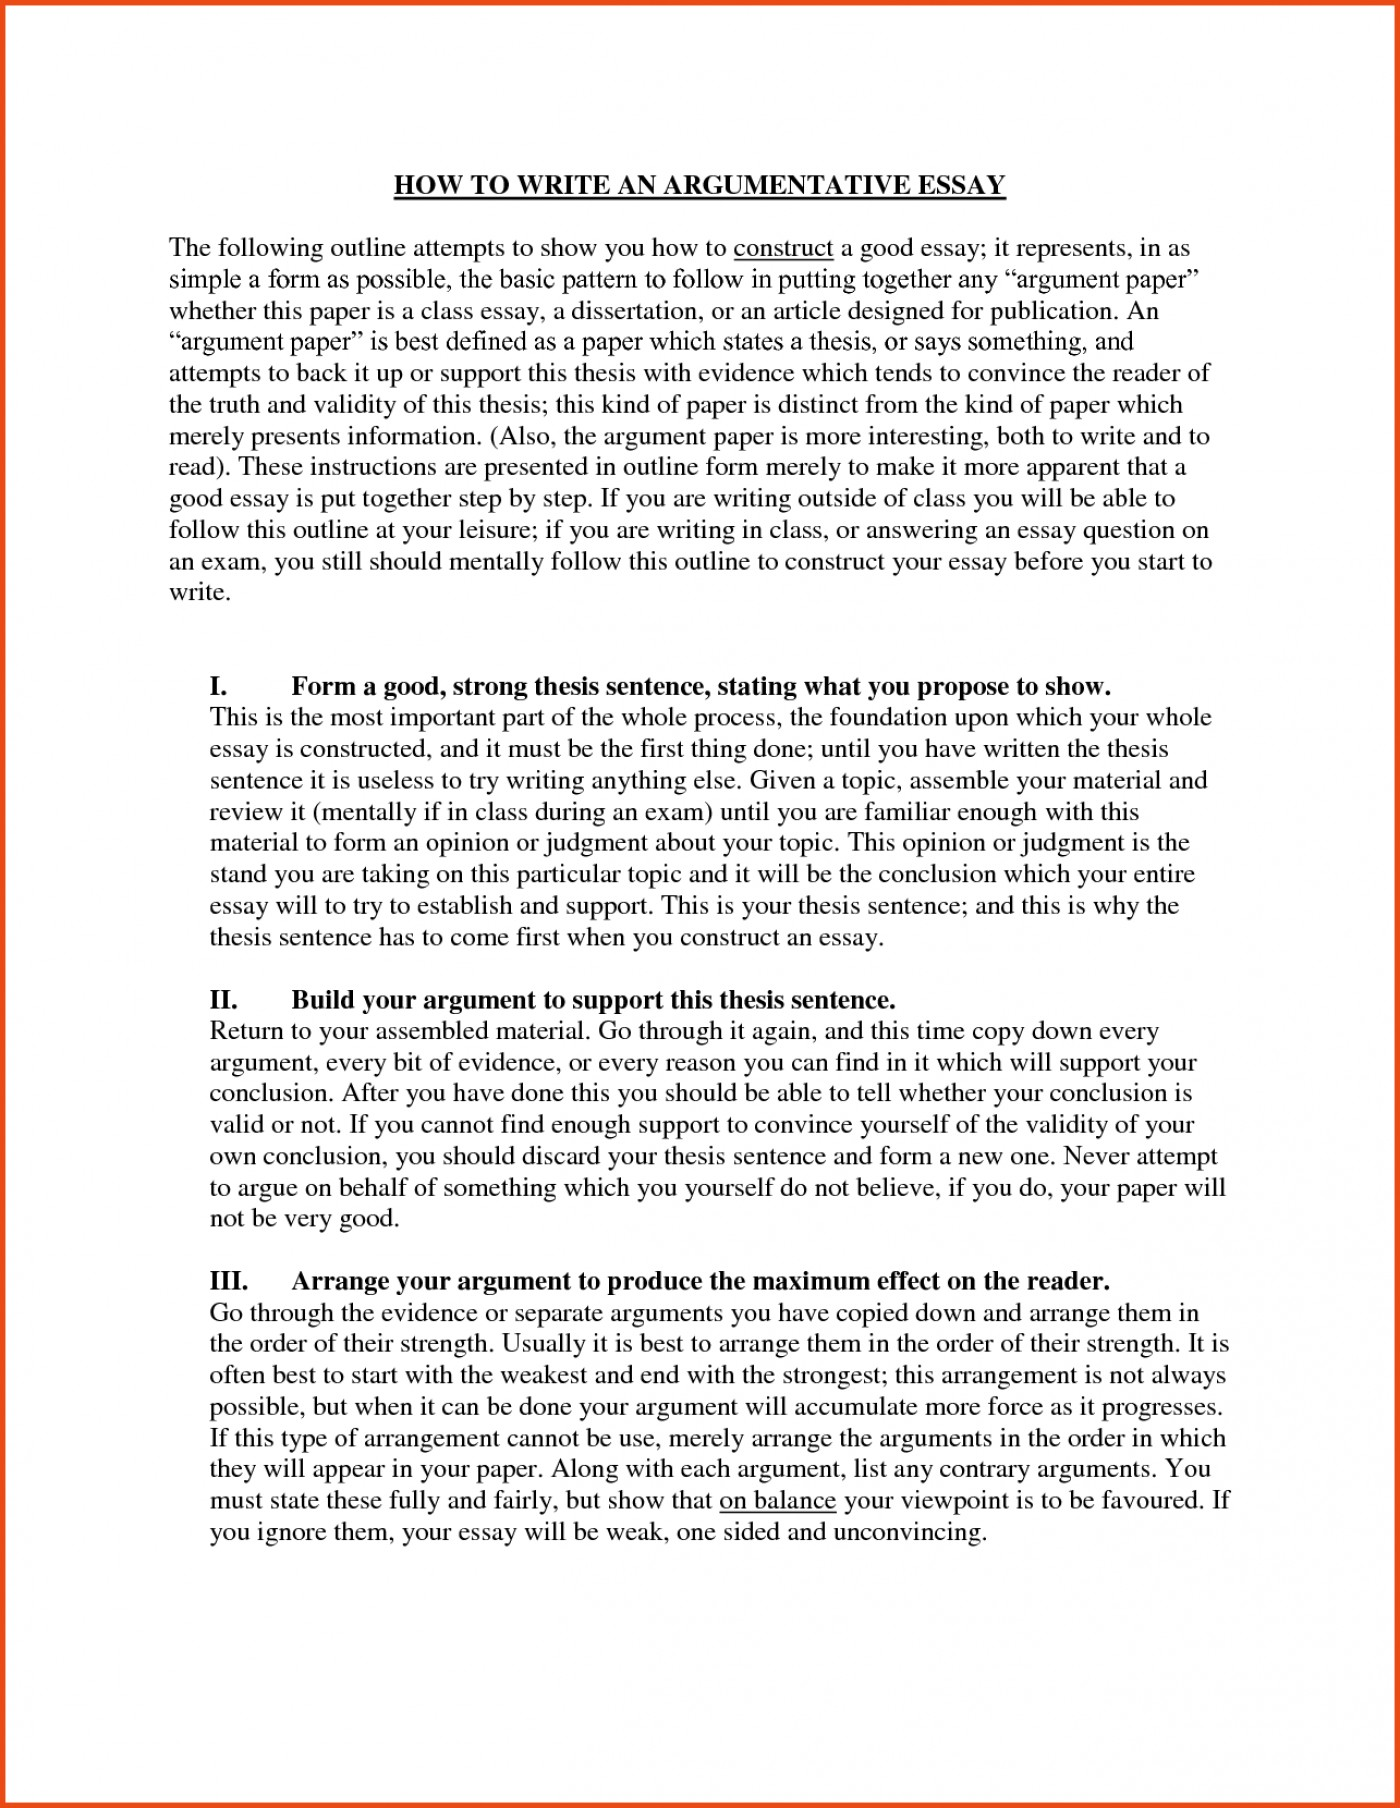 005 Essay Example How To Start An Brilliant Ideas Of Good Ways About Yourself Dissertation Nice Amazing Argumentative A Book With Definition Your Life 1400